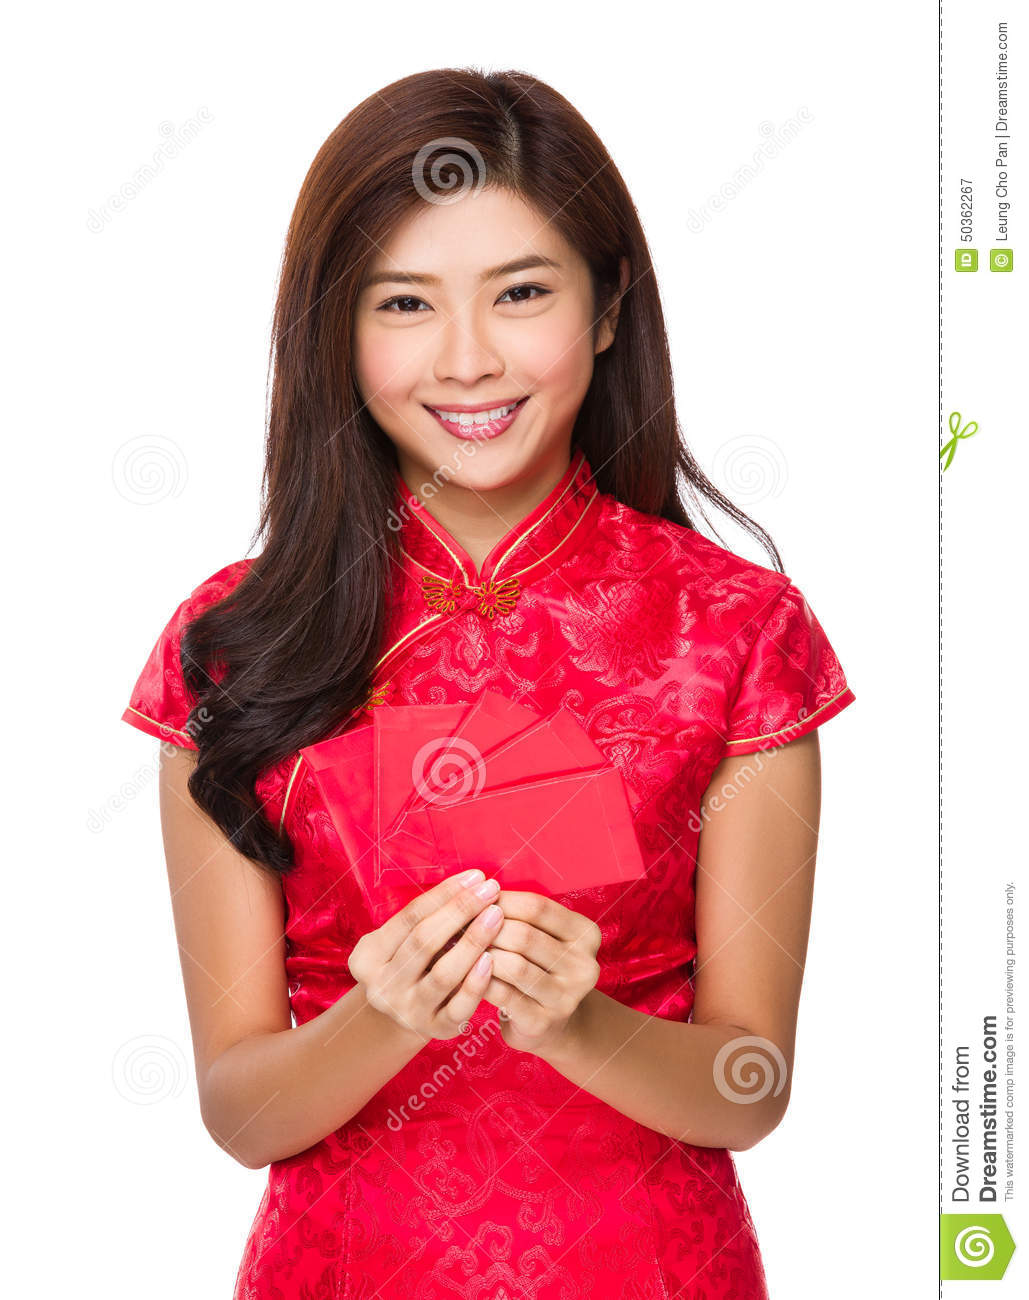 luna asian girl personals The asian social group group is for asians (all types chinese, japanese,  korean, etc and we welcome all race/ethnicities to join) who want to meet and .